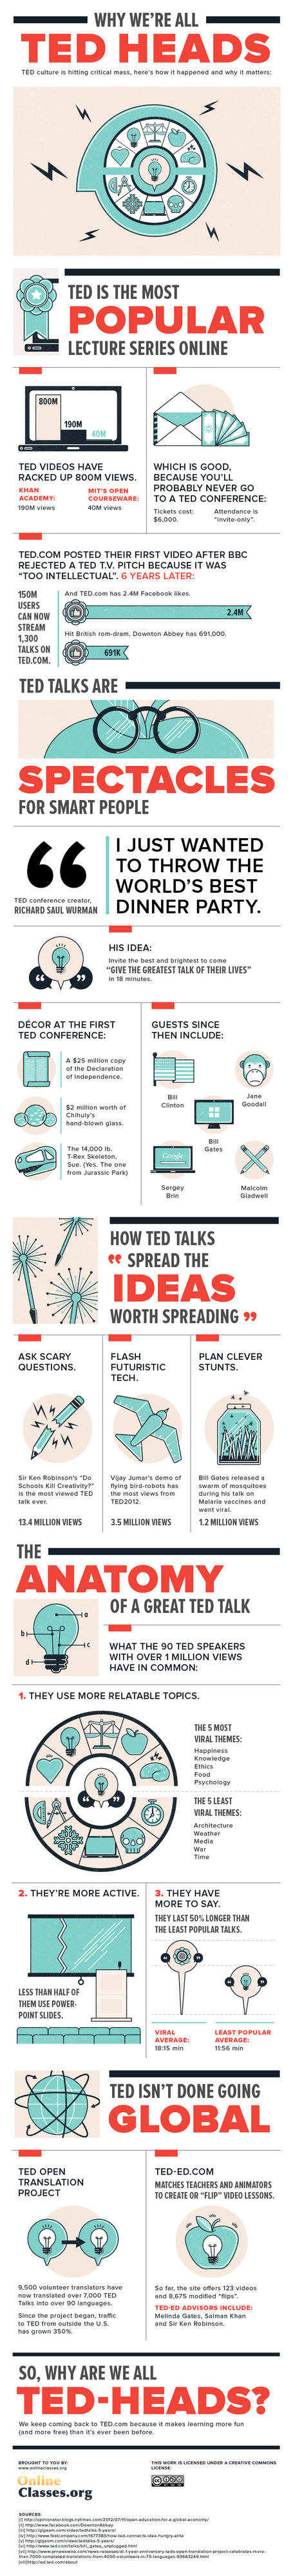 TED : The Greatest Platform Worth Sharing | Differentiated and ict Instruction | Scoop.it